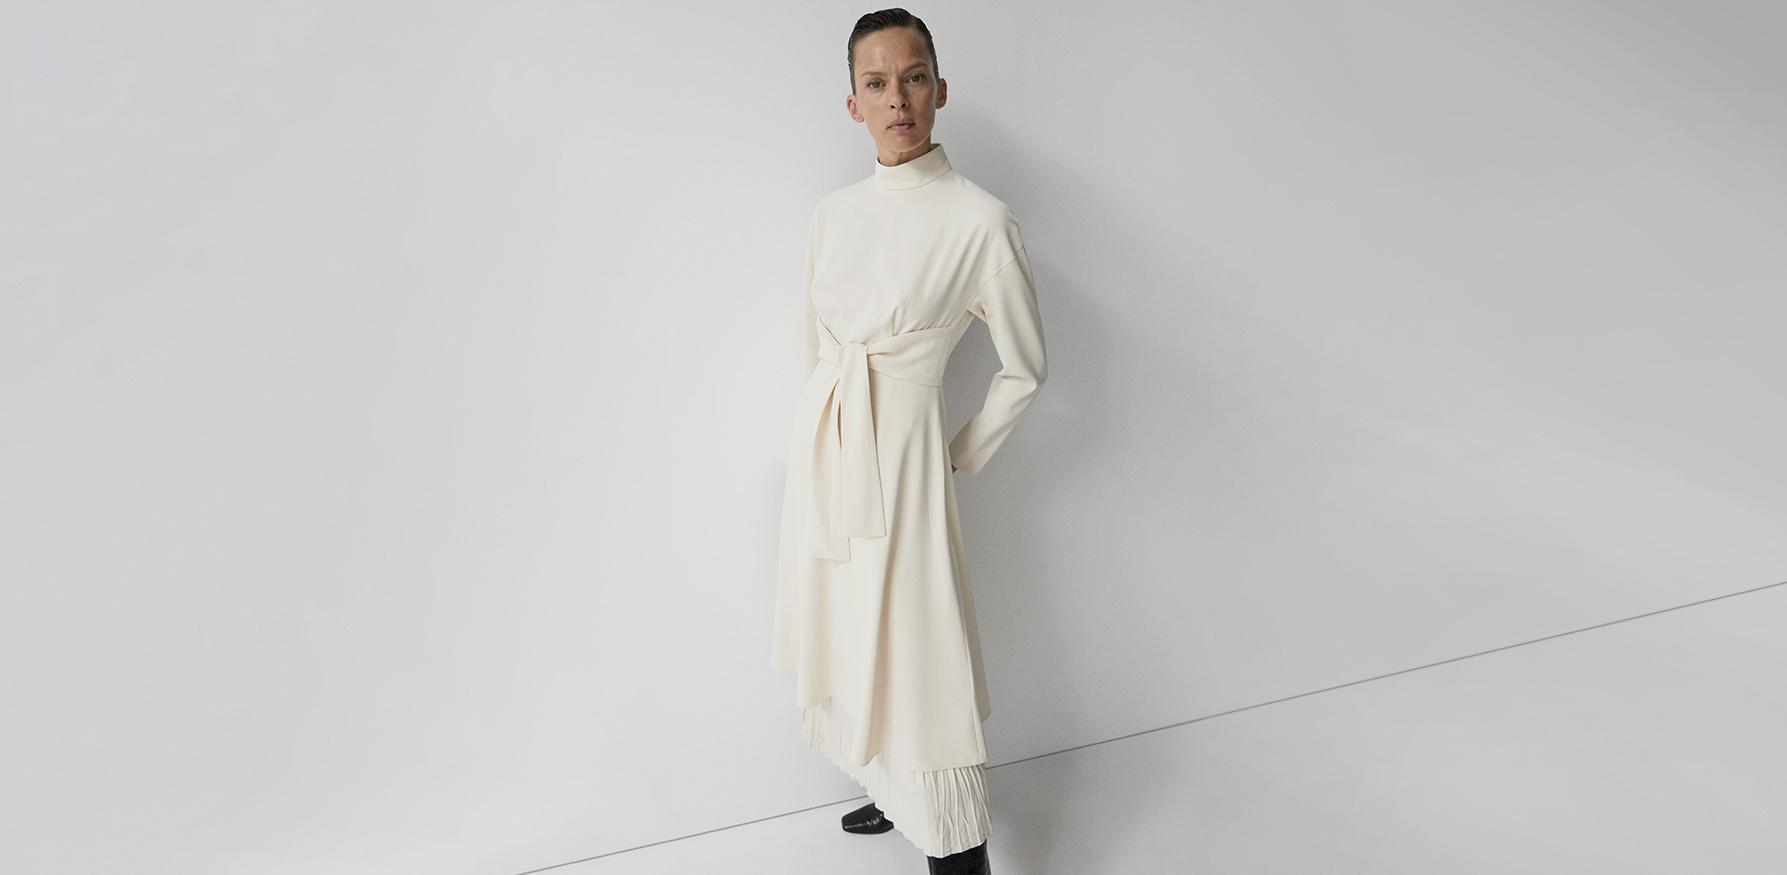 One of our designer dresses, a long-sleeved polyester in a beige colour dress with strip detail and central knot and mandarin collar.